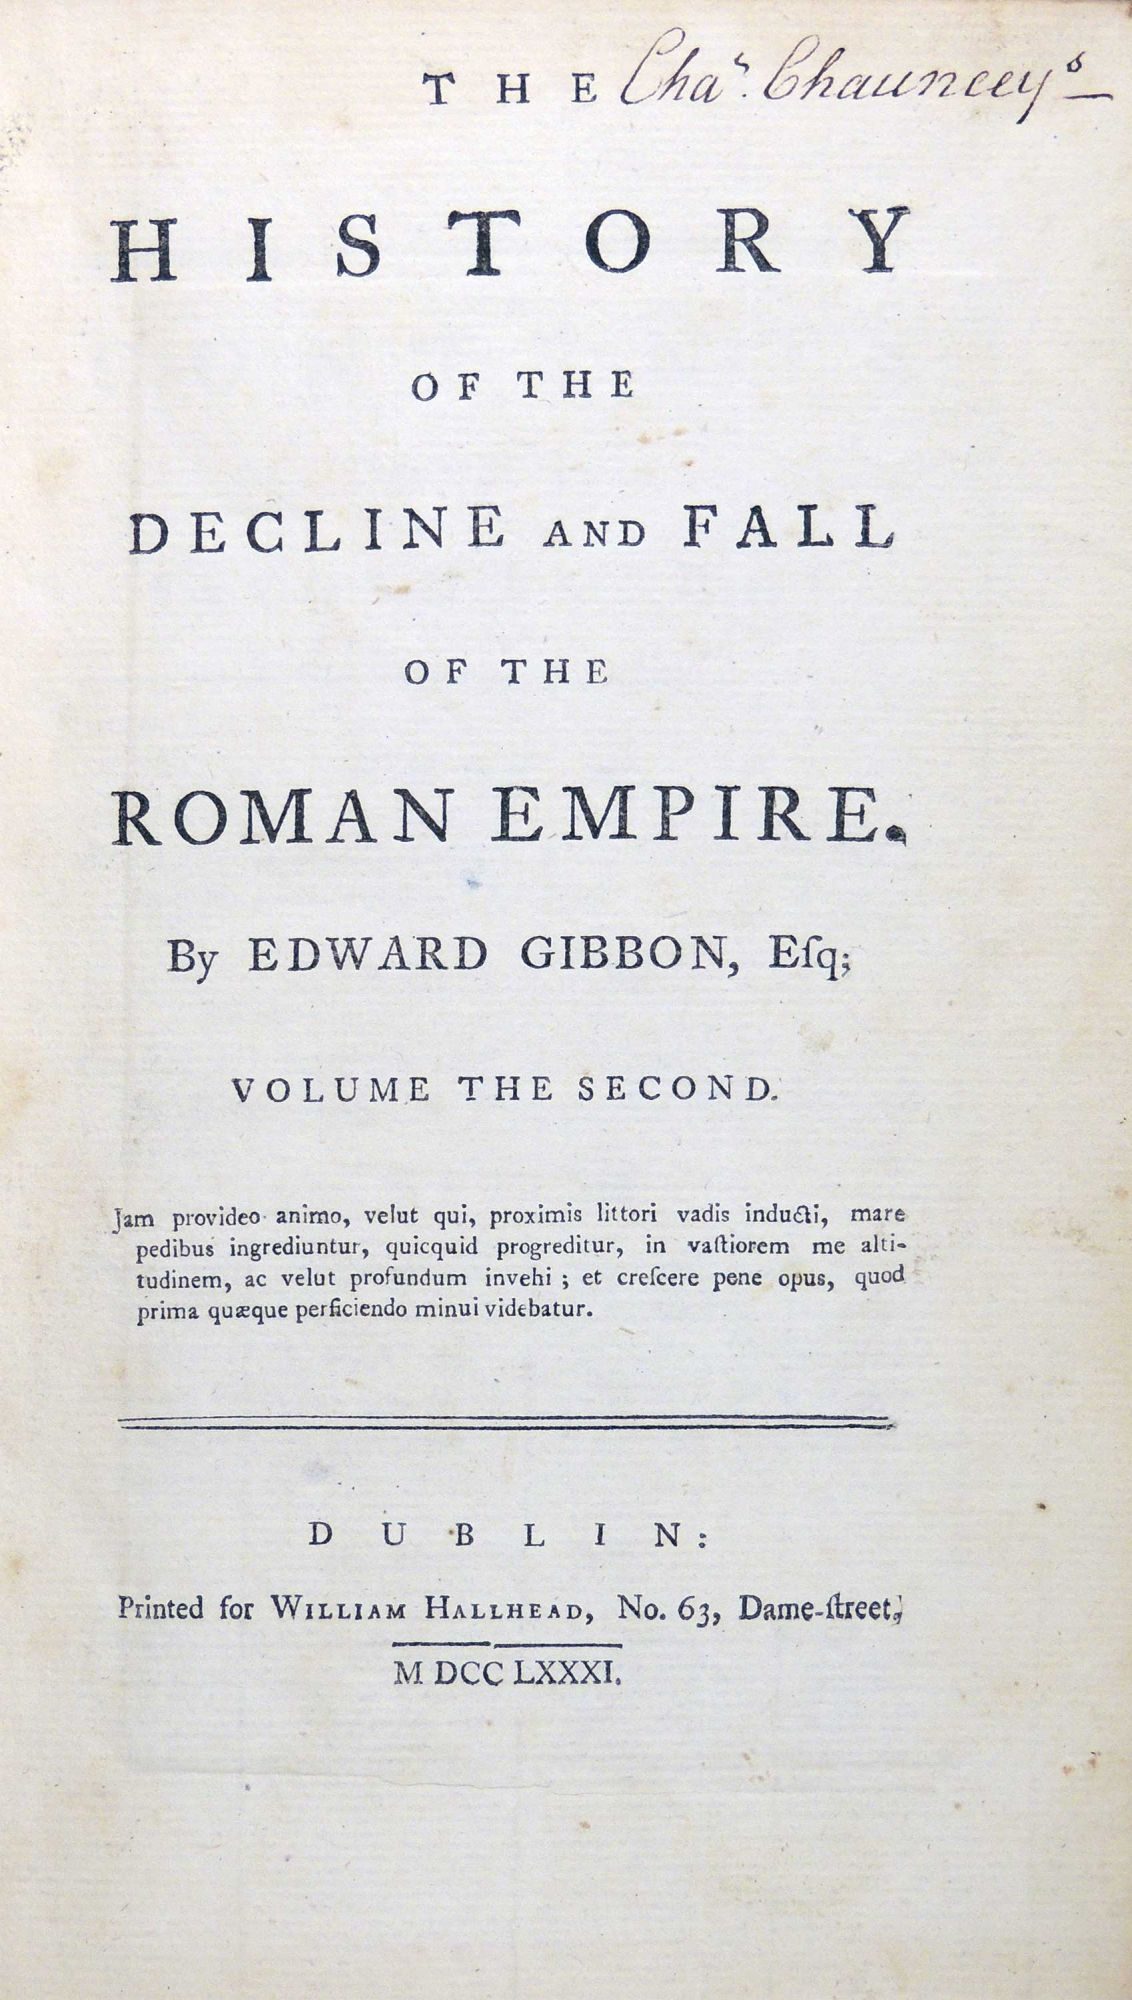 a history of the decline and fall of the roman empire The history of the decline and fall of the roman empire a new edition london: printed for a strahan and t cadell, in the strand, 1788.